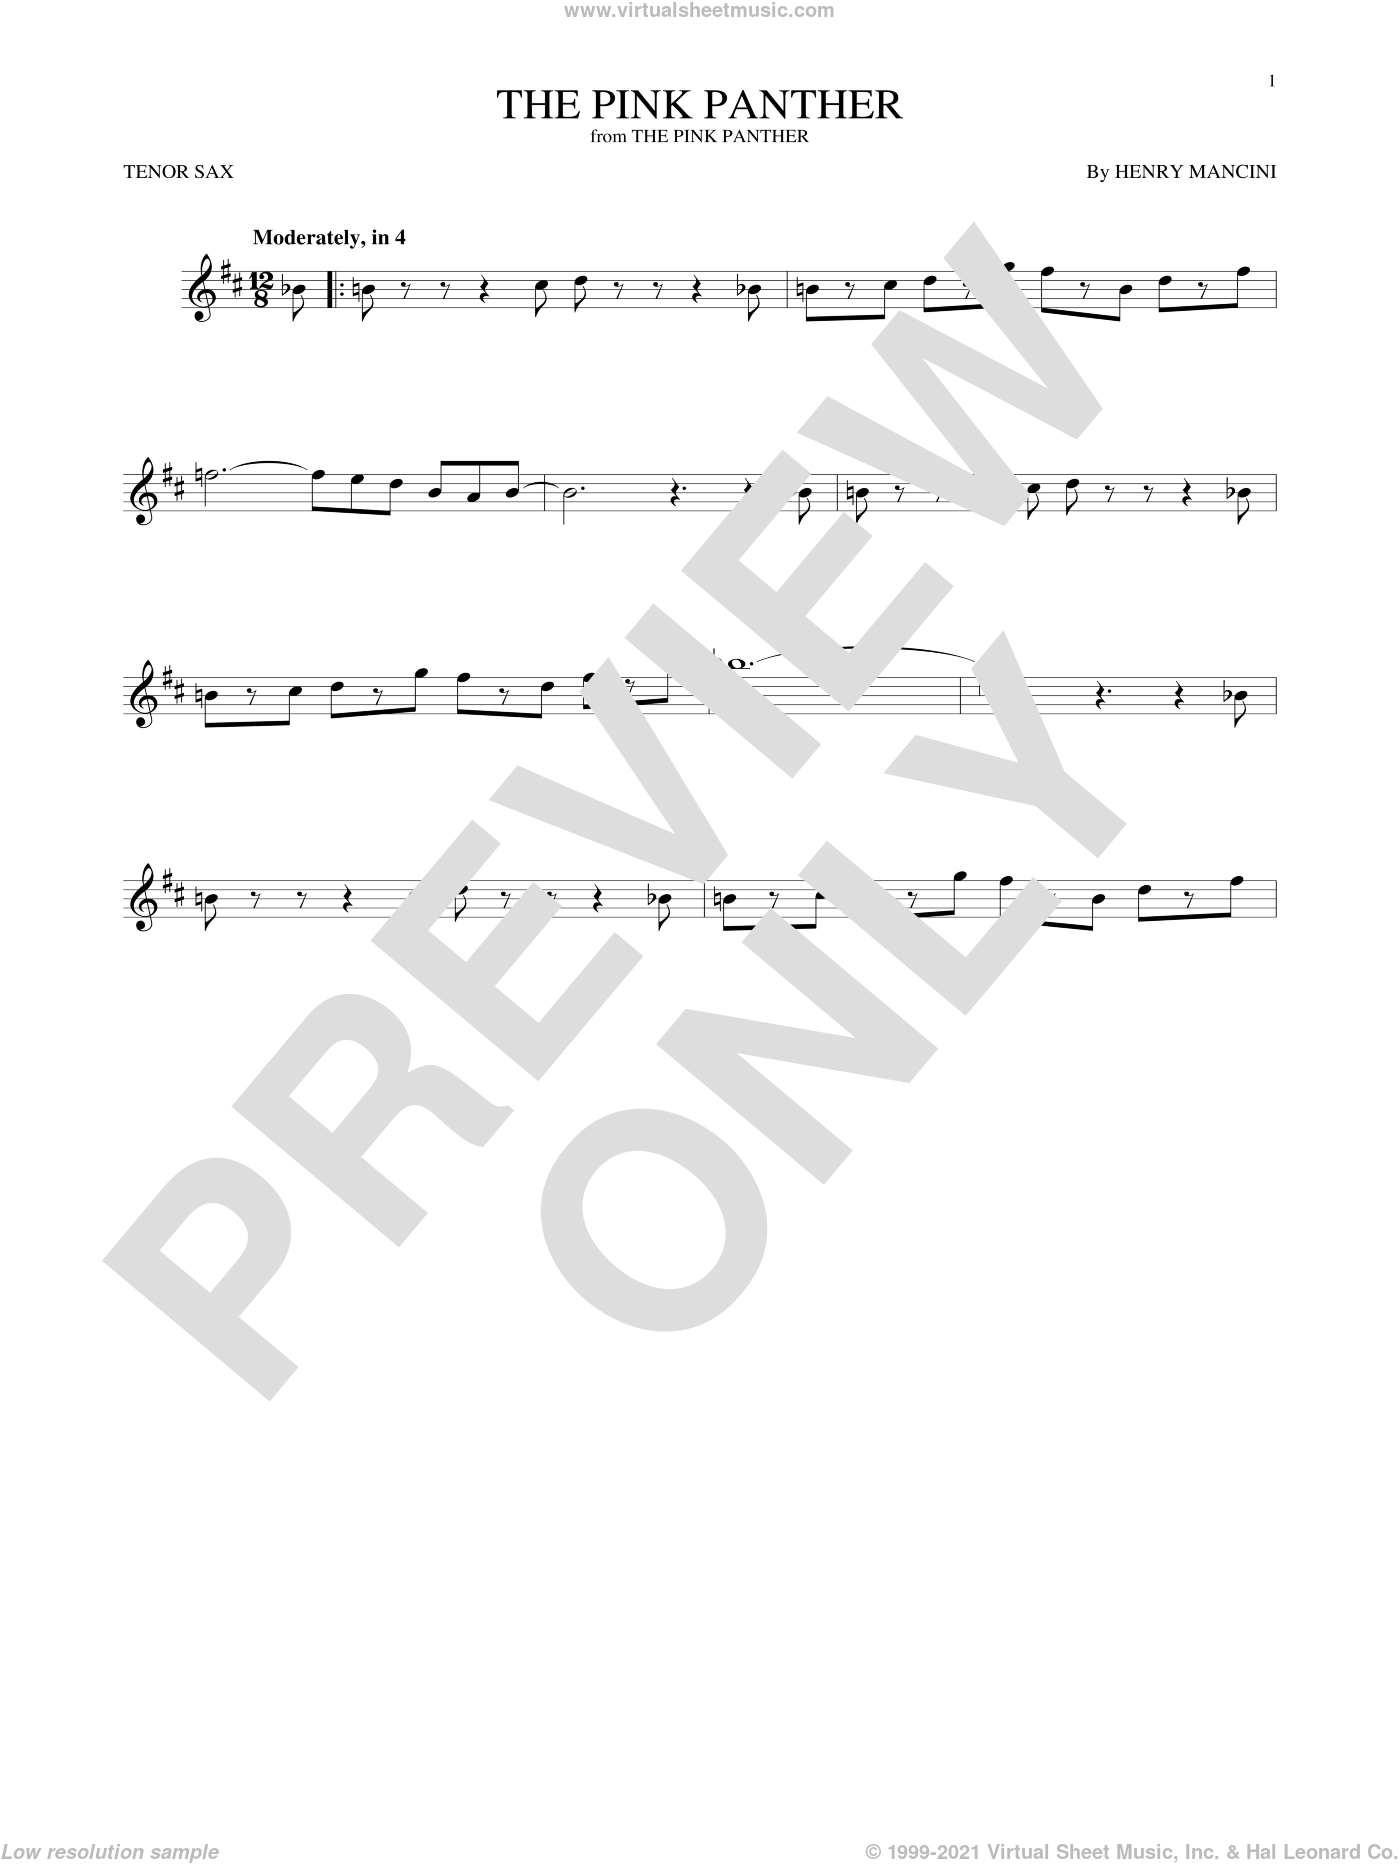 The Pink Panther sheet music for tenor saxophone solo by Henry Mancini, intermediate skill level